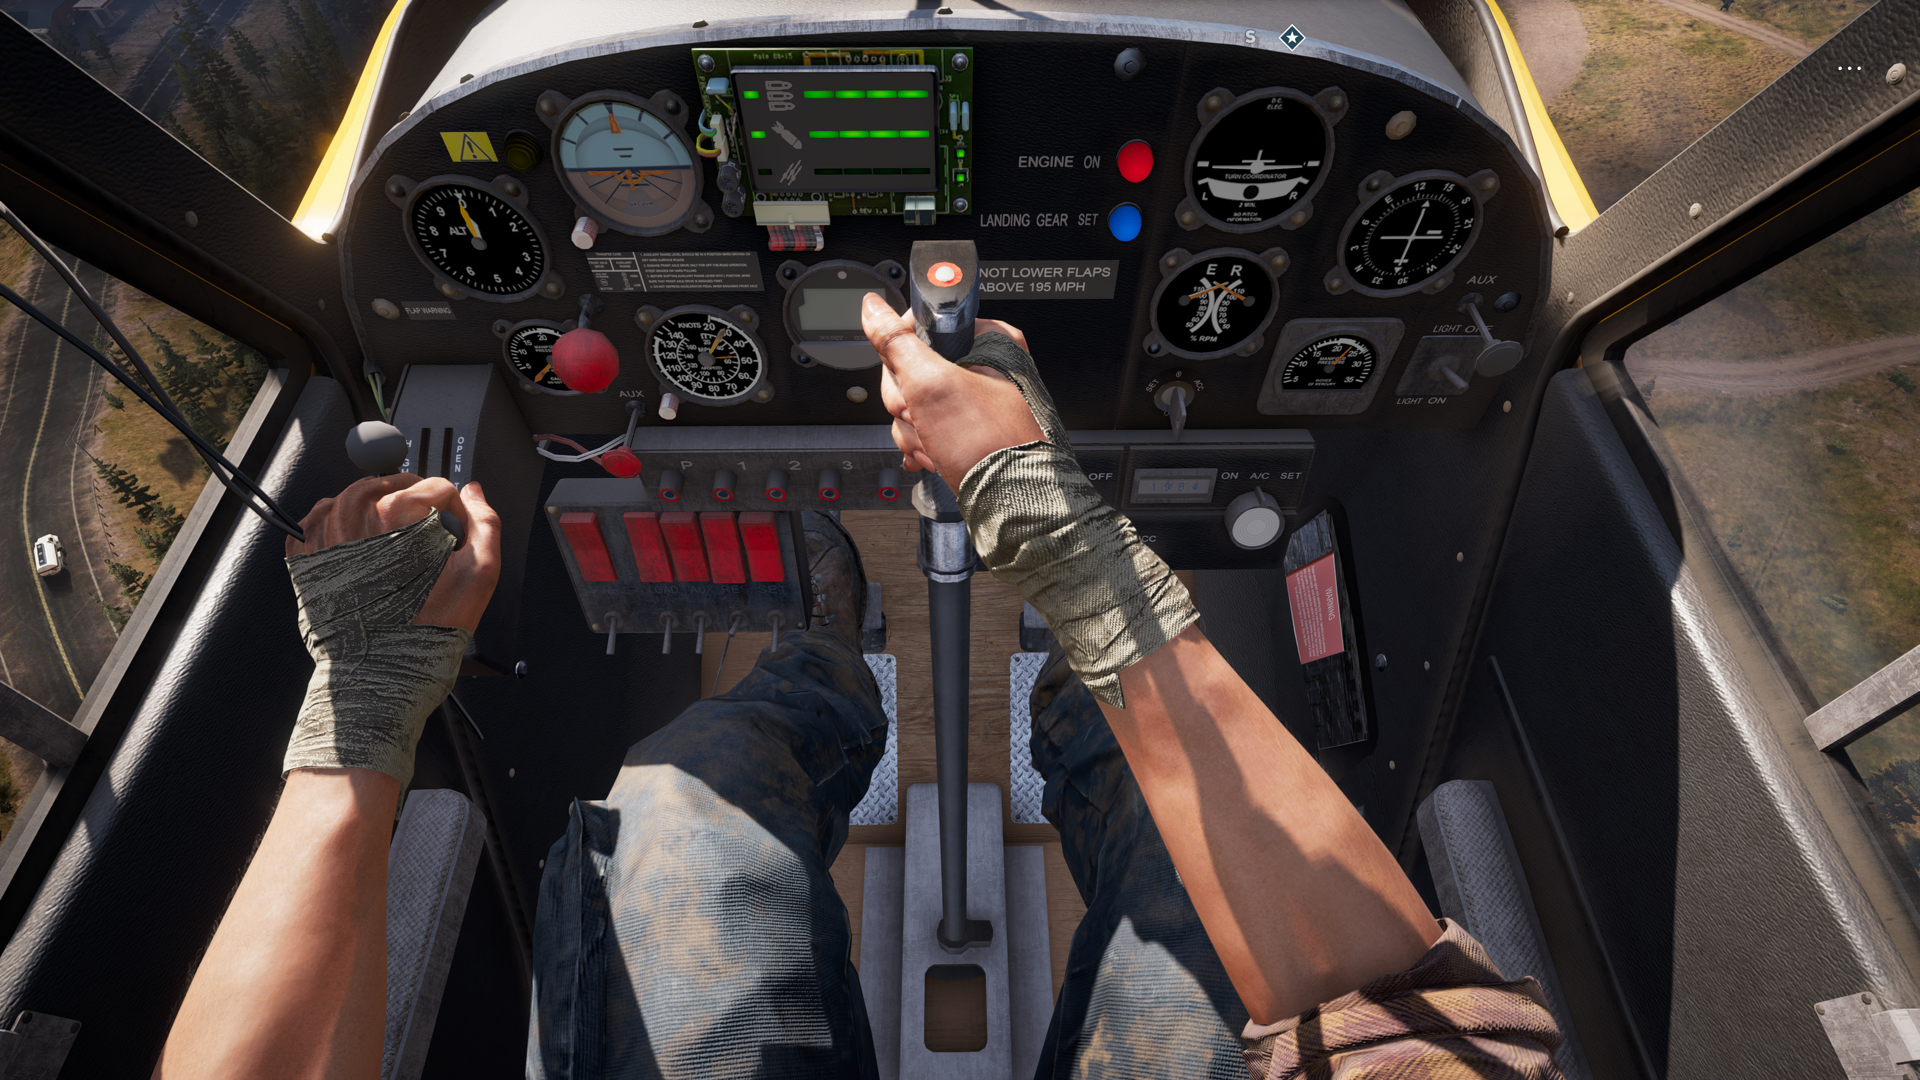 Far Cry 5 has really detailed cockpits in it that you barely ever see, because you're too busy playing the video game and not looking down and pressing the screenshot button like me.